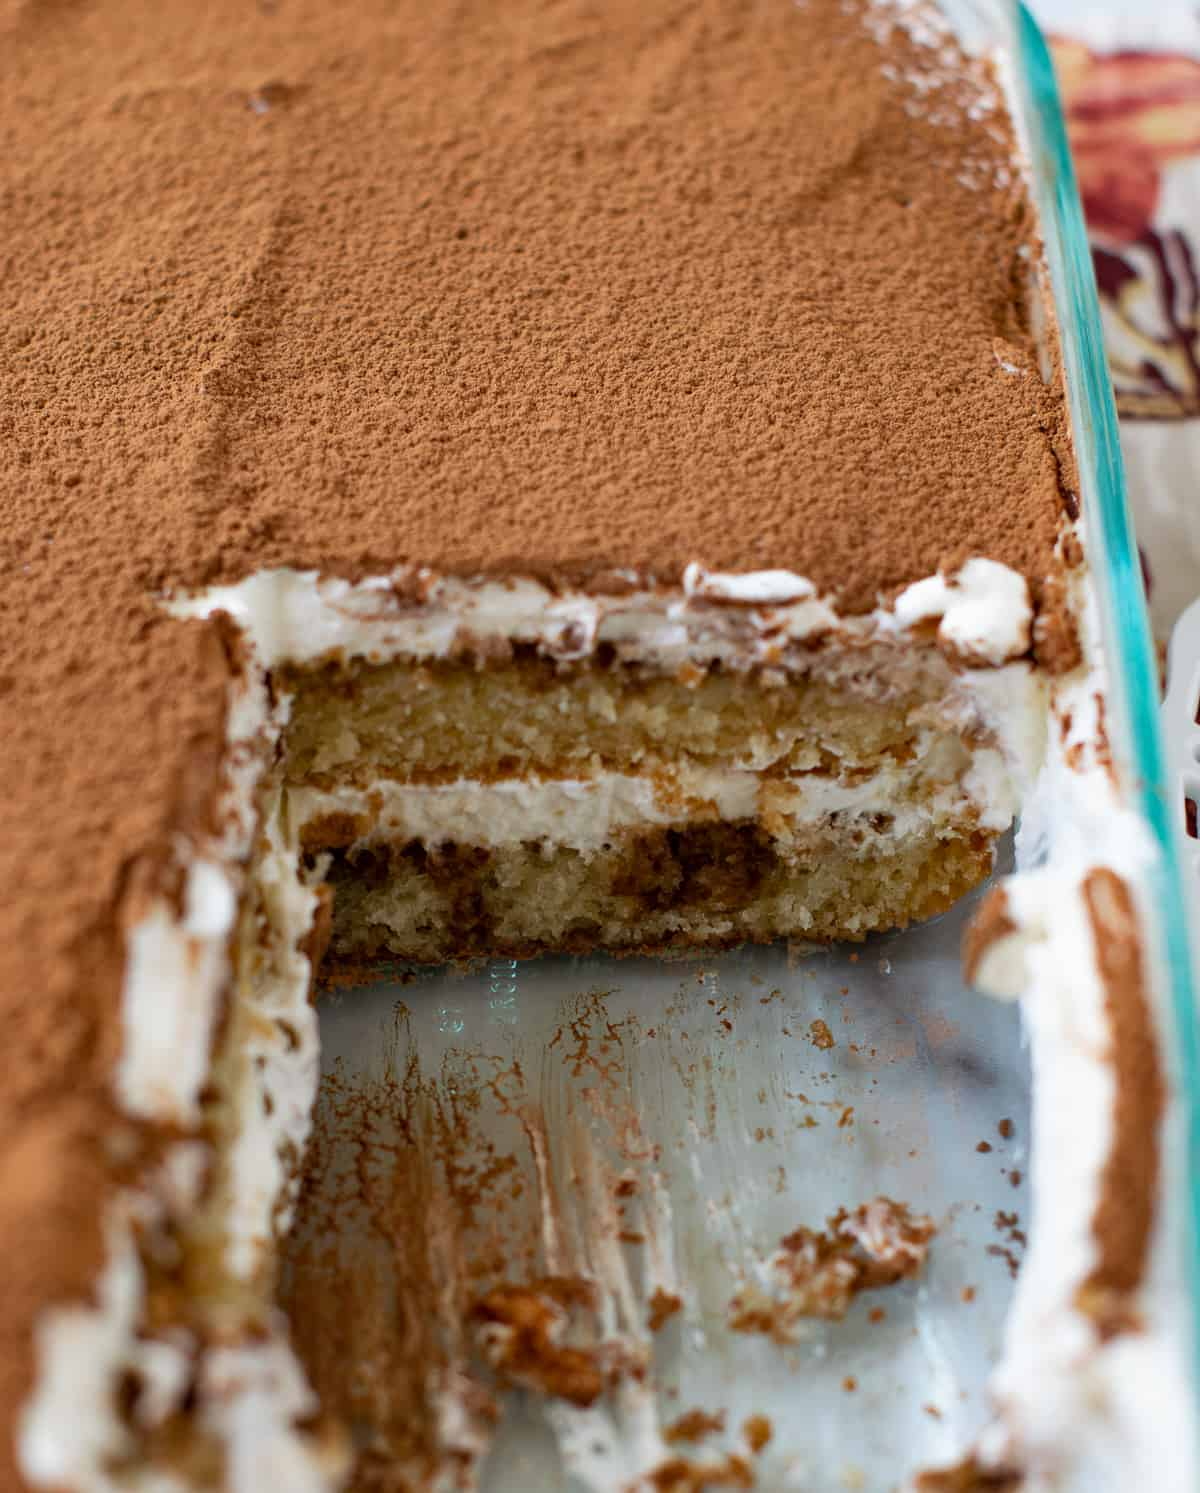 Eggless tiramisu cake sliced and served from a glass pan